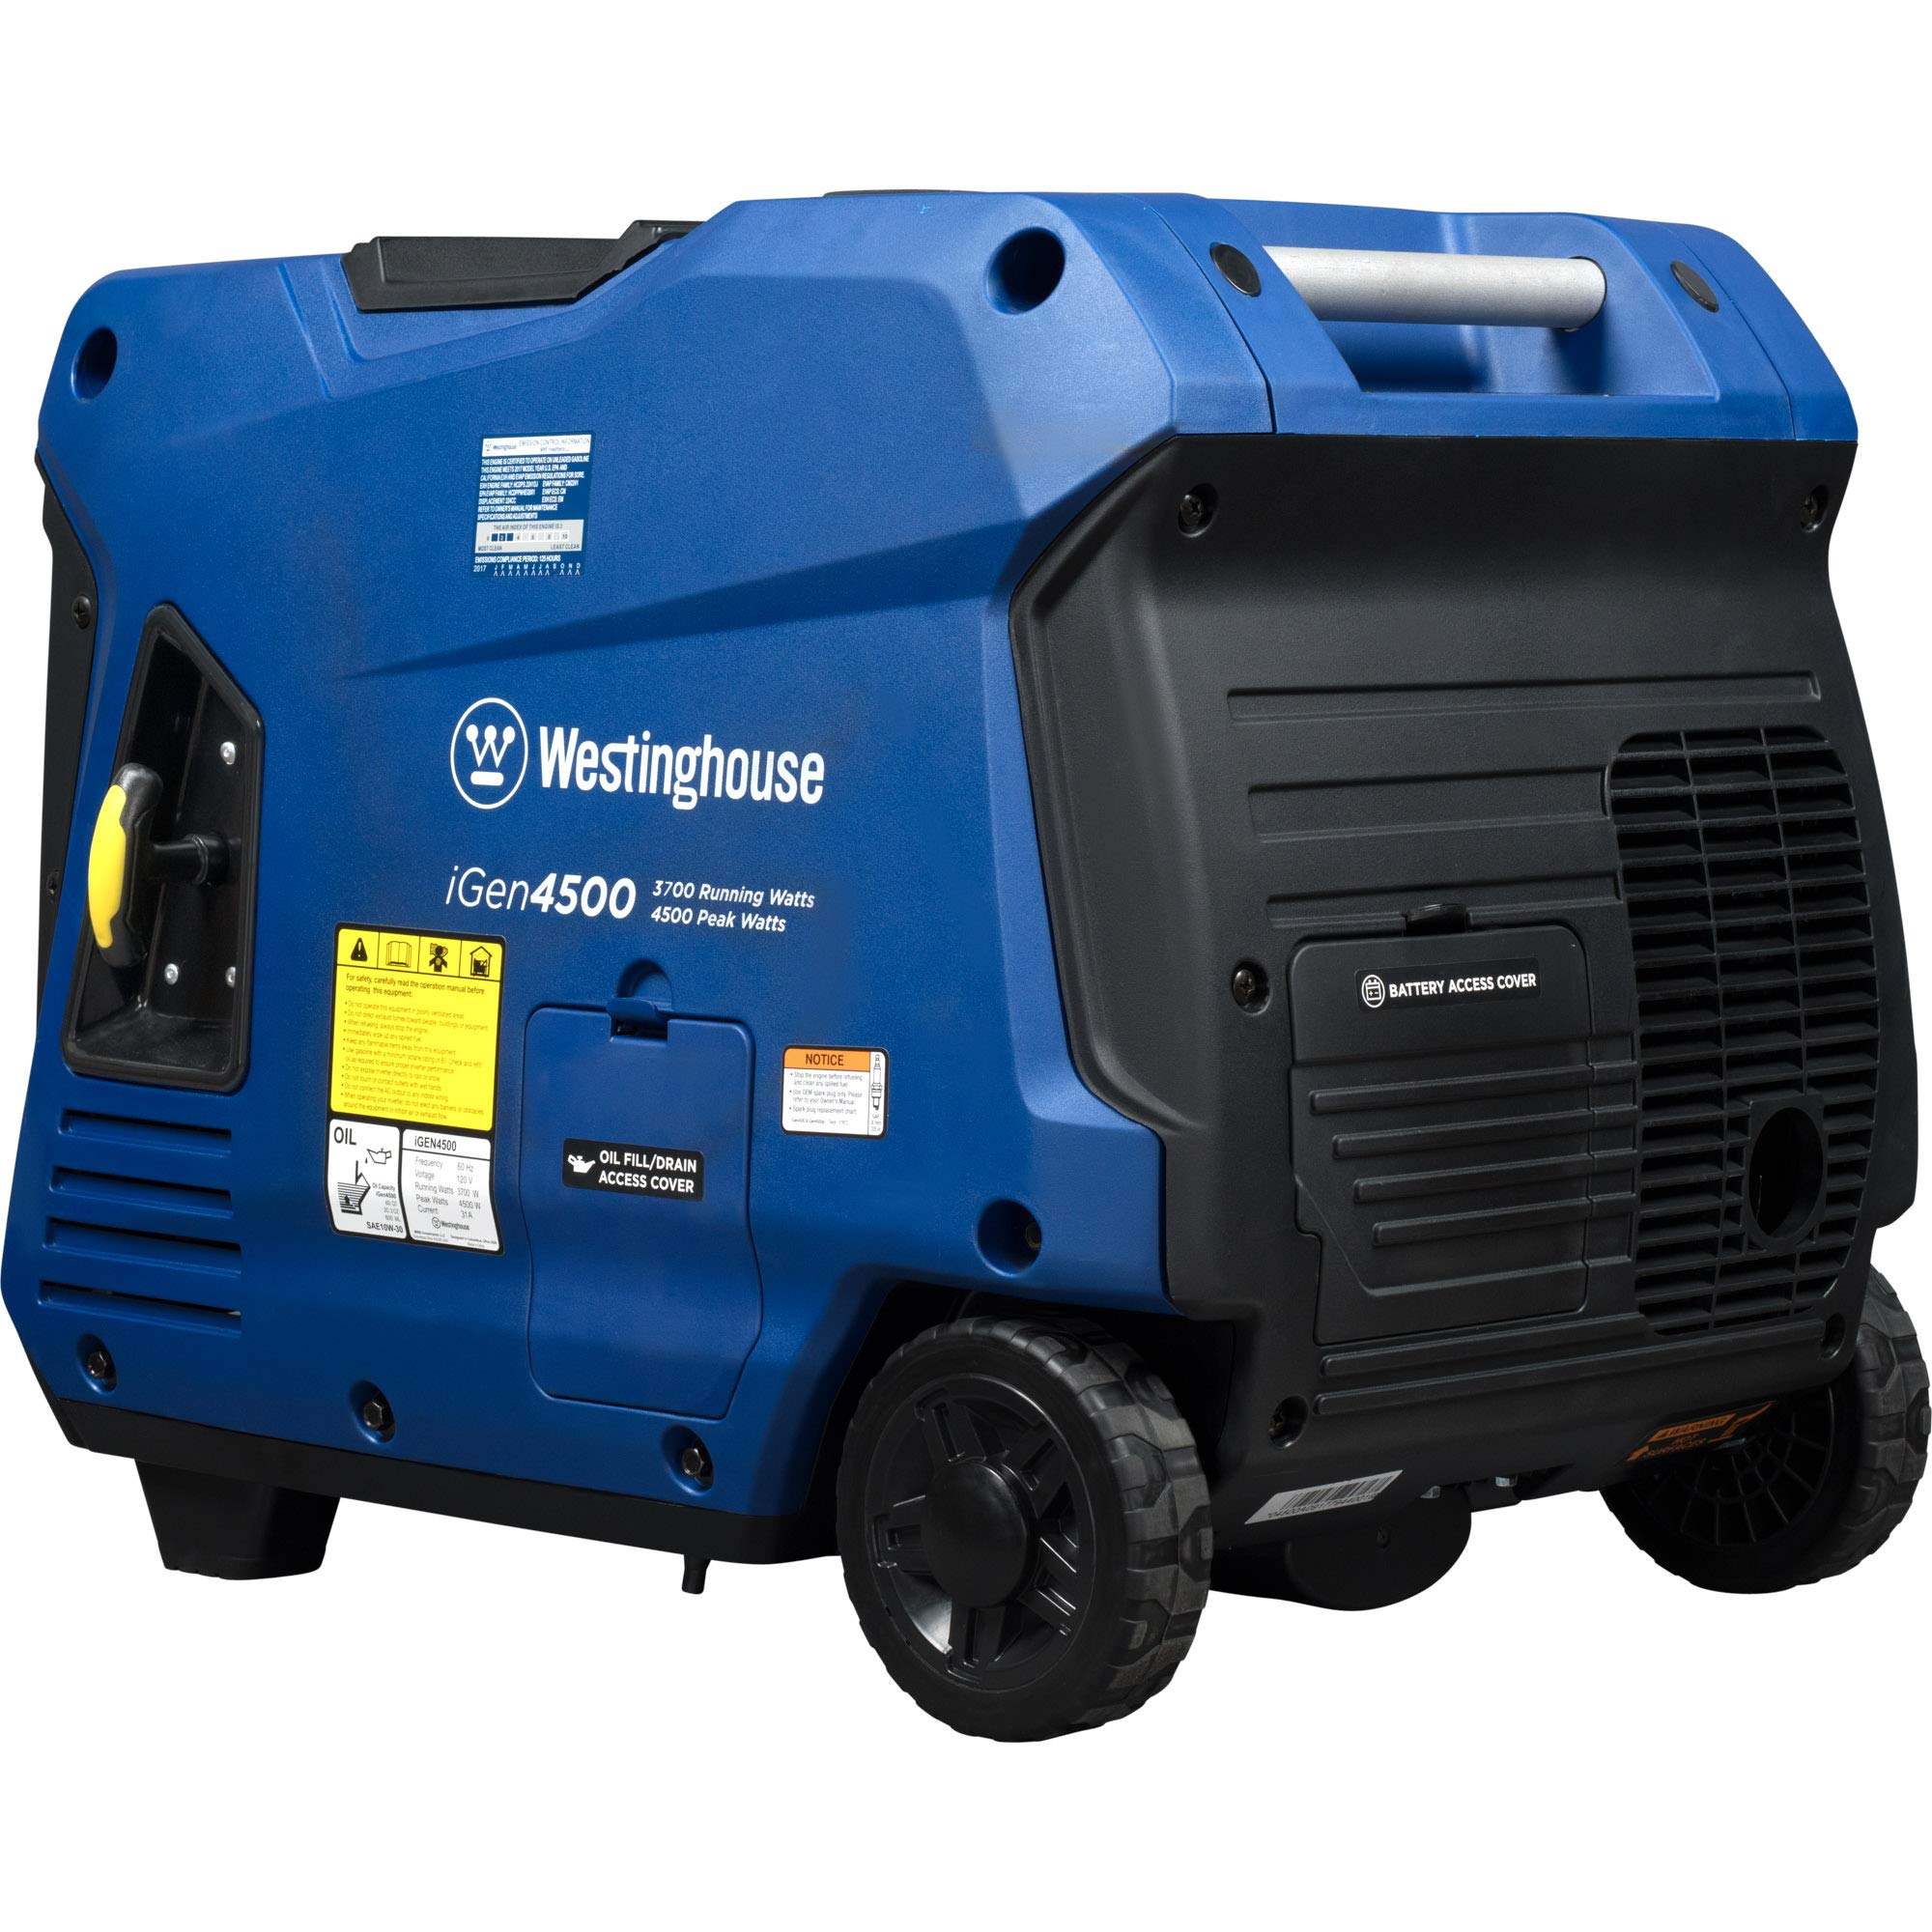 Westinghouse iGen4500 Super Quiet Portable Inverter Generator - 3700 Rated Watts and 4500 Peak Watts - Gas Powered - CARB Compliant by Westinghouse (Image #1)